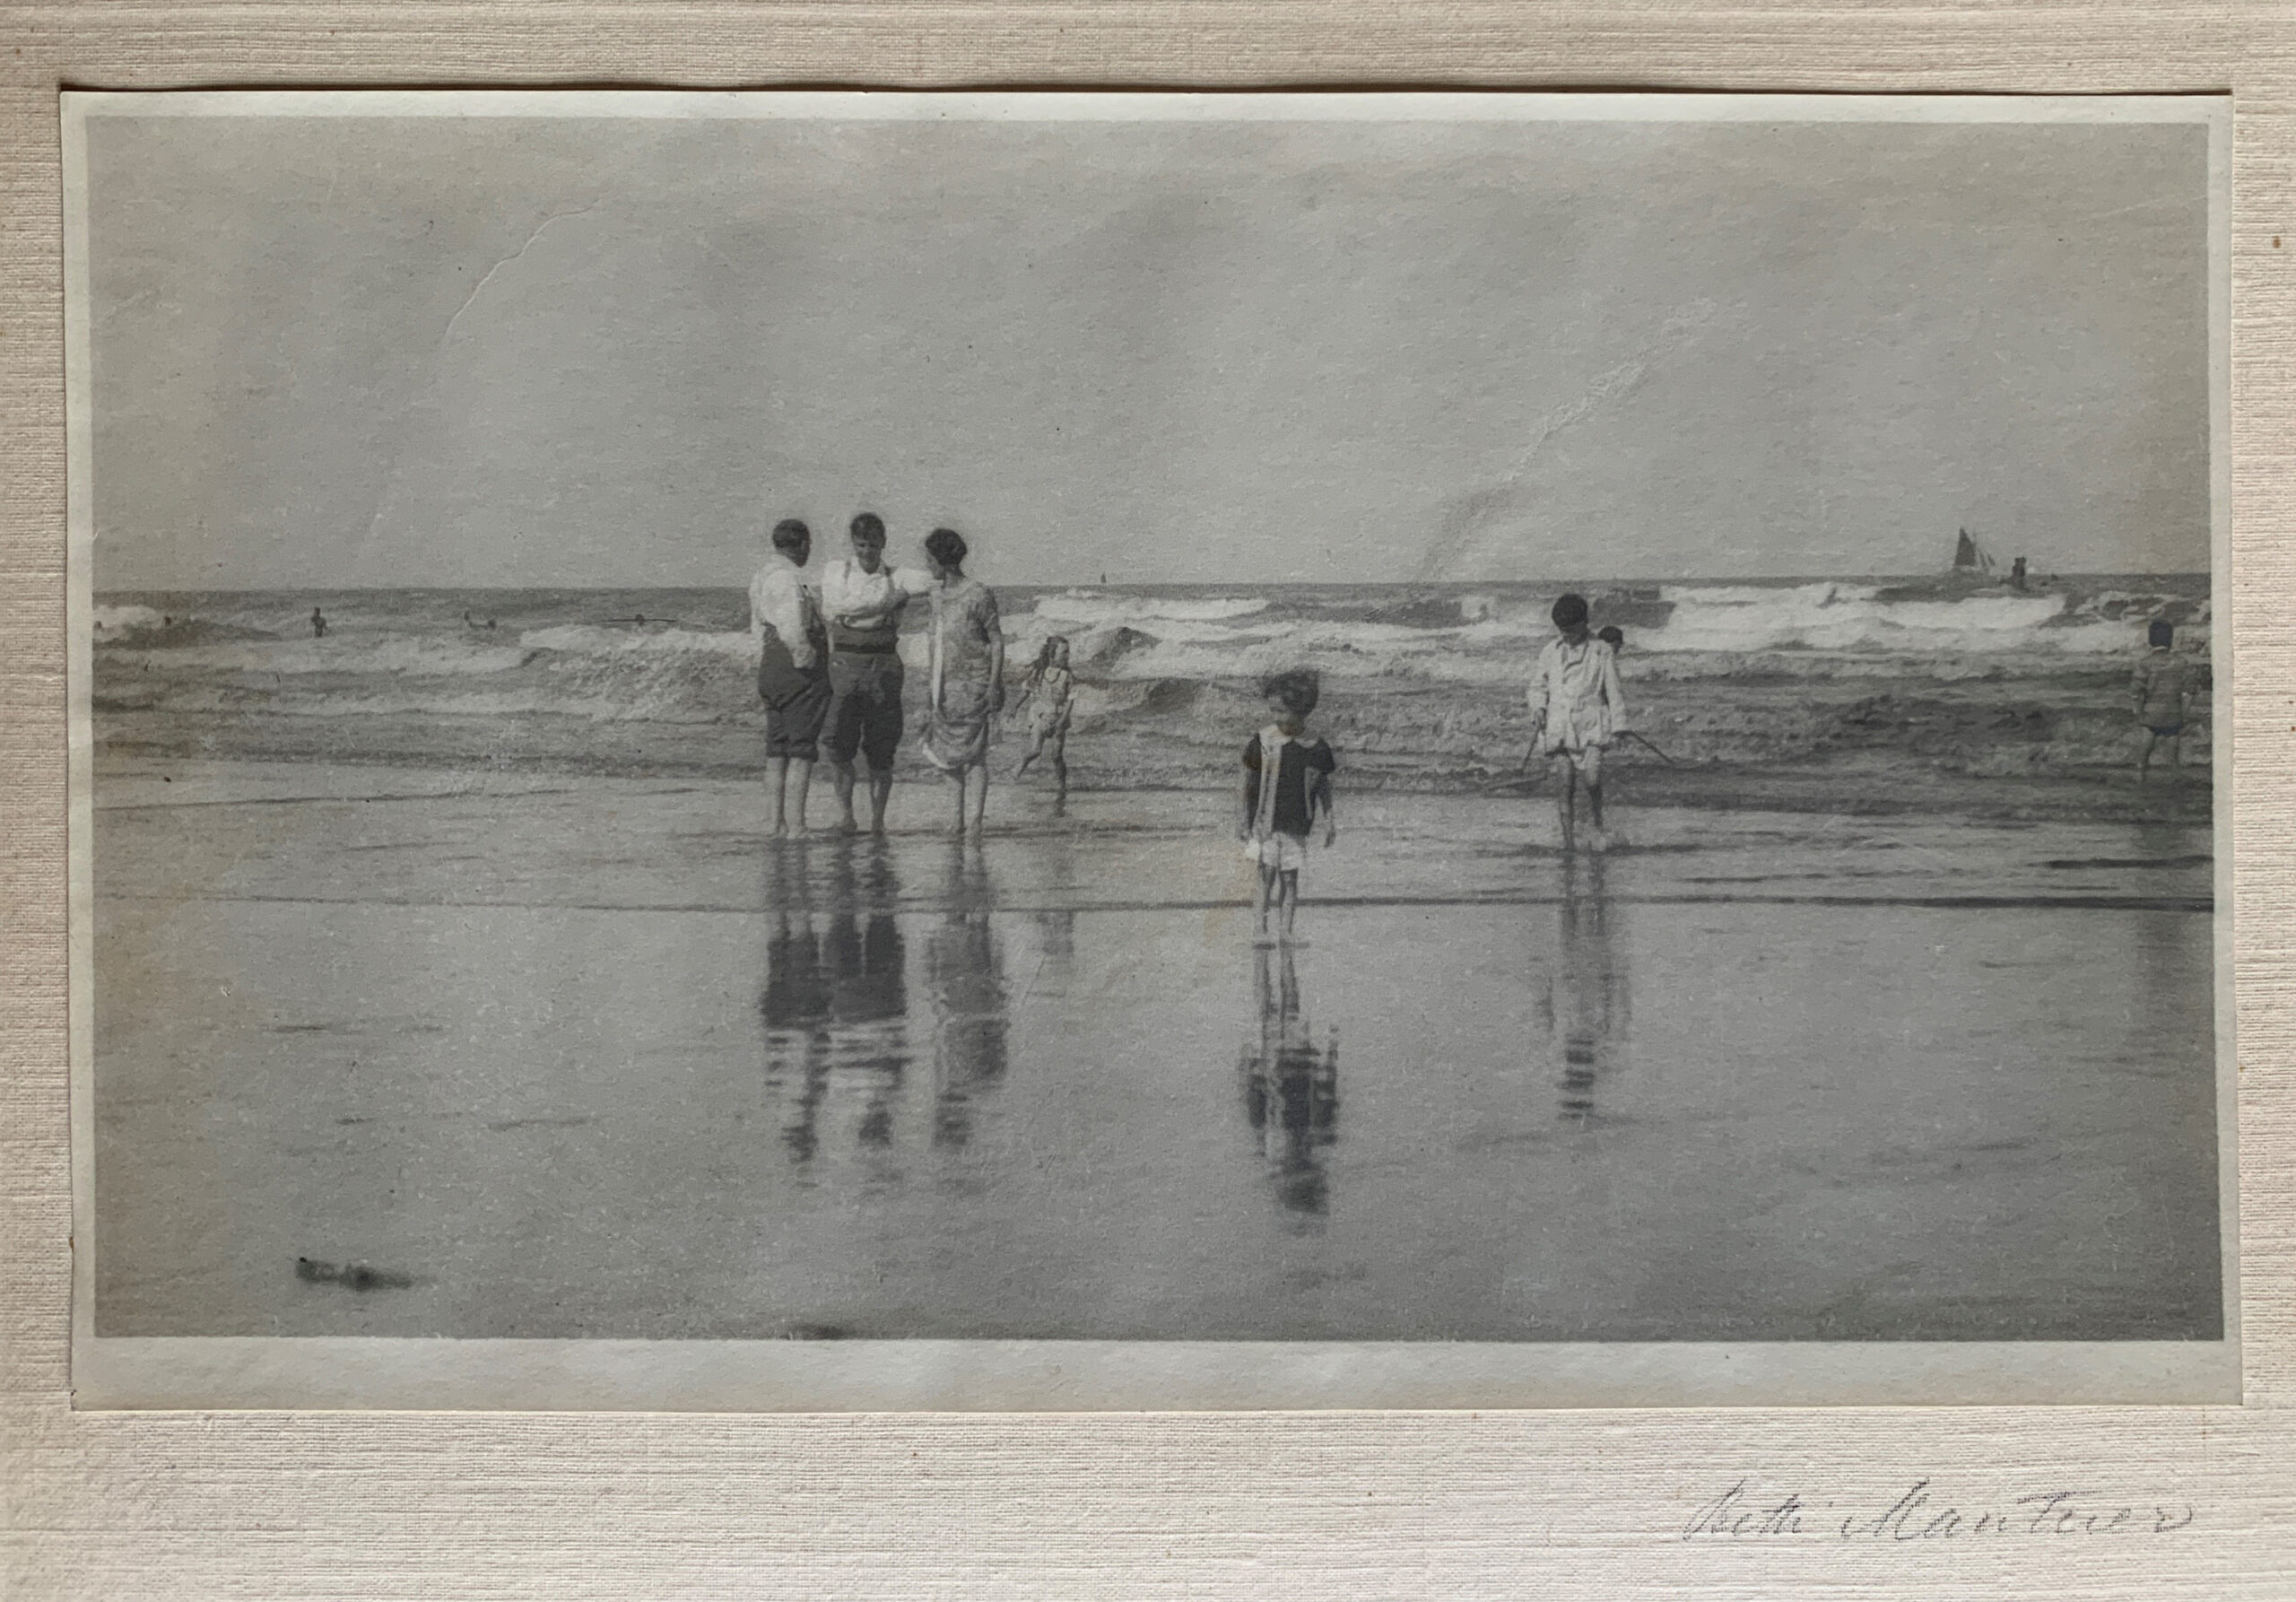 Children at Dinard, 1919 by Betti Mautner © James Hyman. a white family are at the waters edge on a beach.